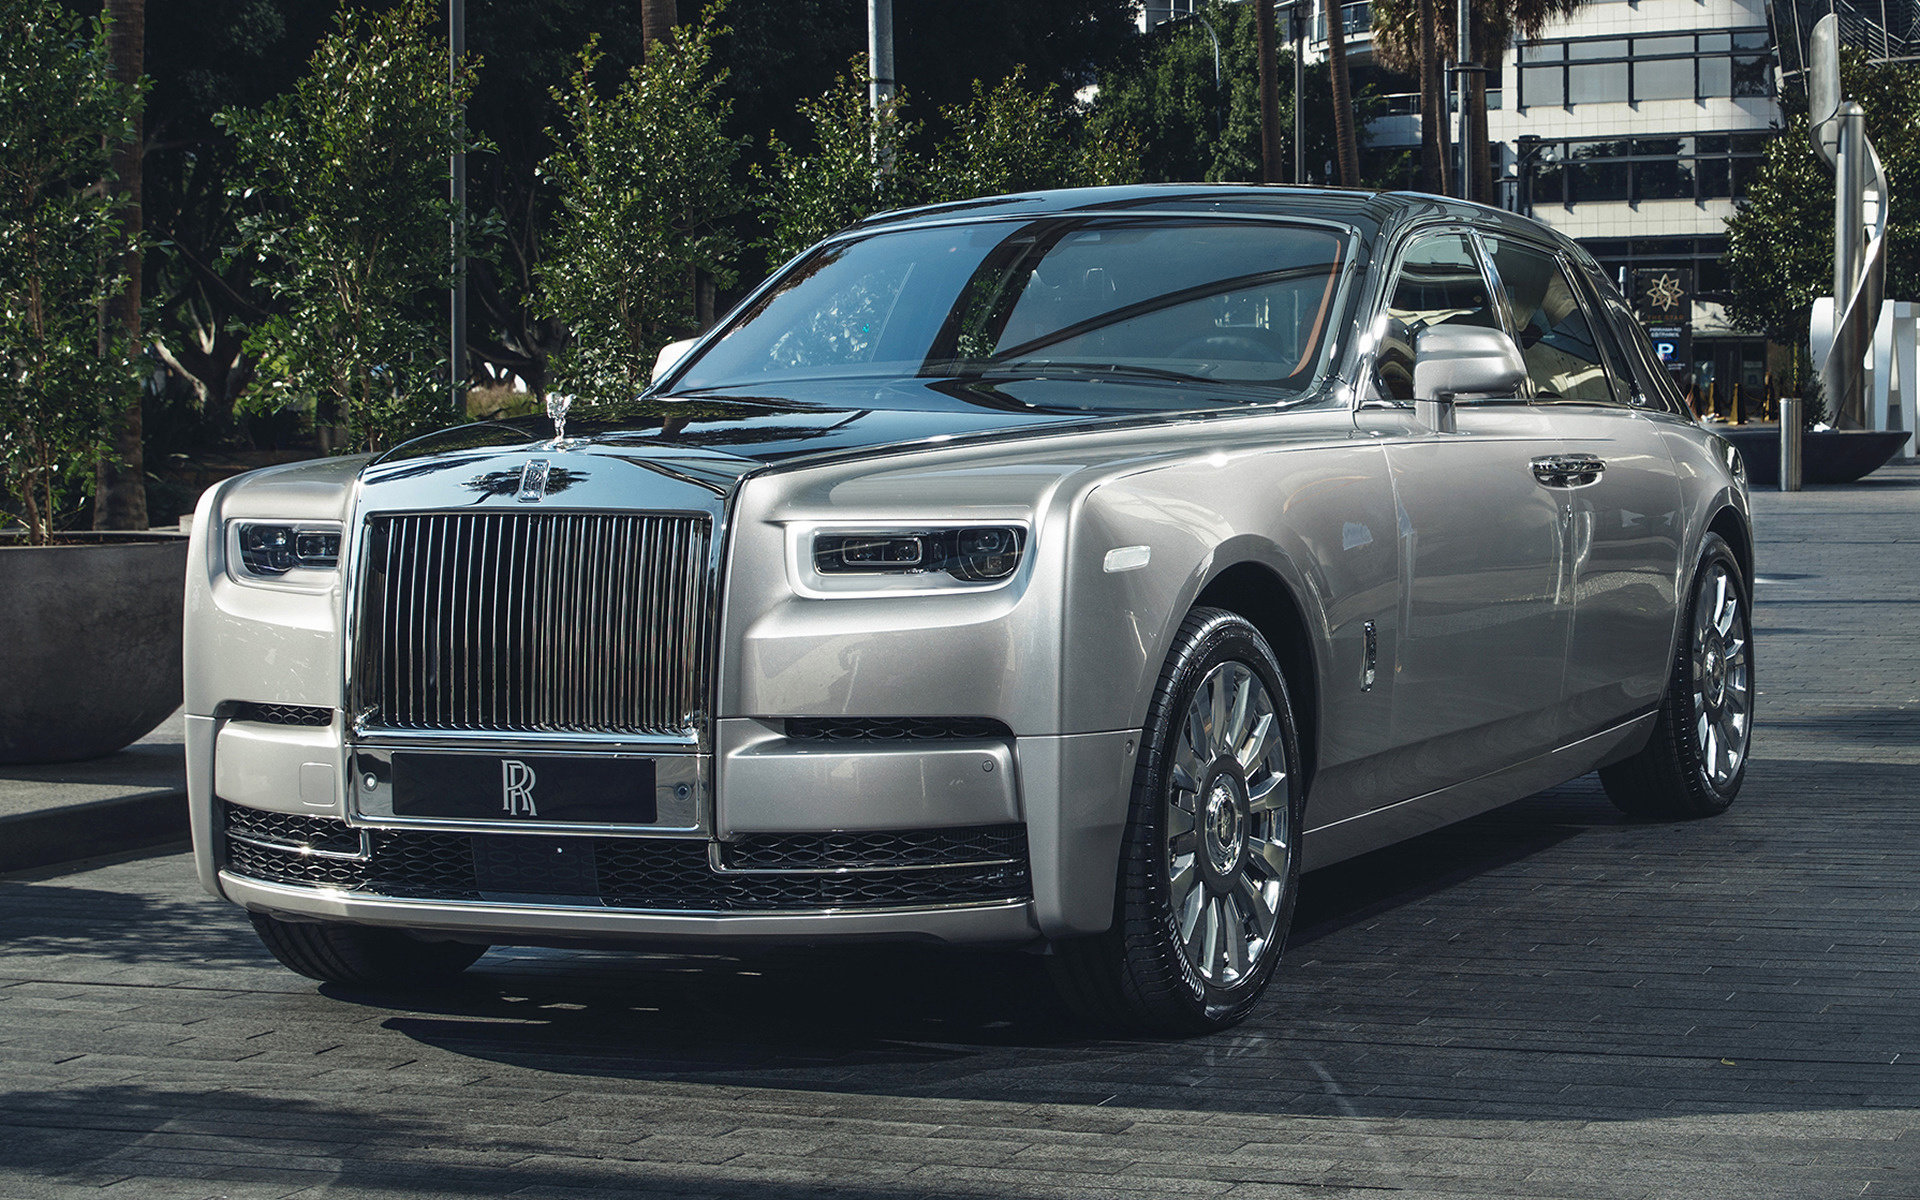 2017 Rolls-Royce Phantom - Wallpapers and HD Images | Car ...